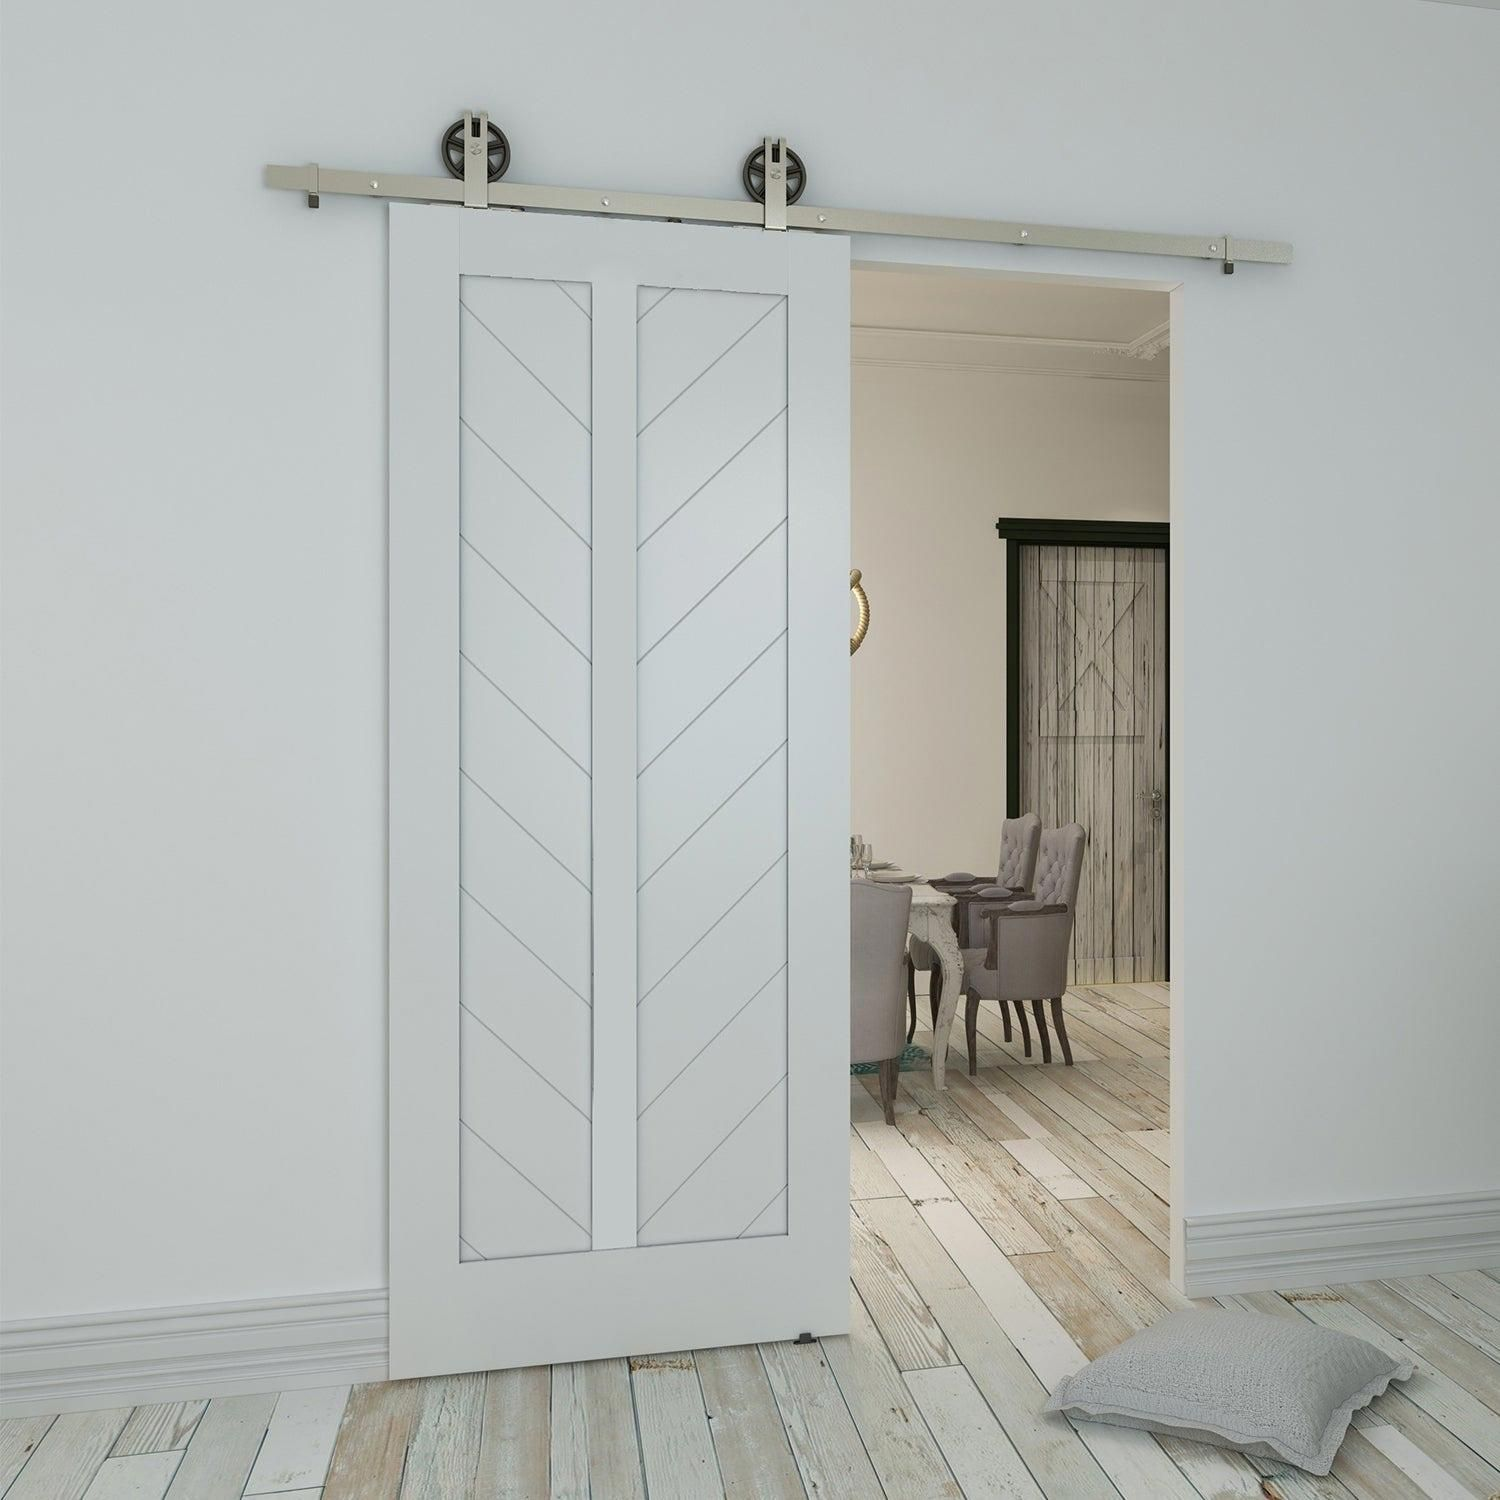 Look At Our Site For Way More Relating To This Delightful Interior Barn Doors With Glass Interiorbarndoorswithglass Puertas De Establo Interiores Puertas